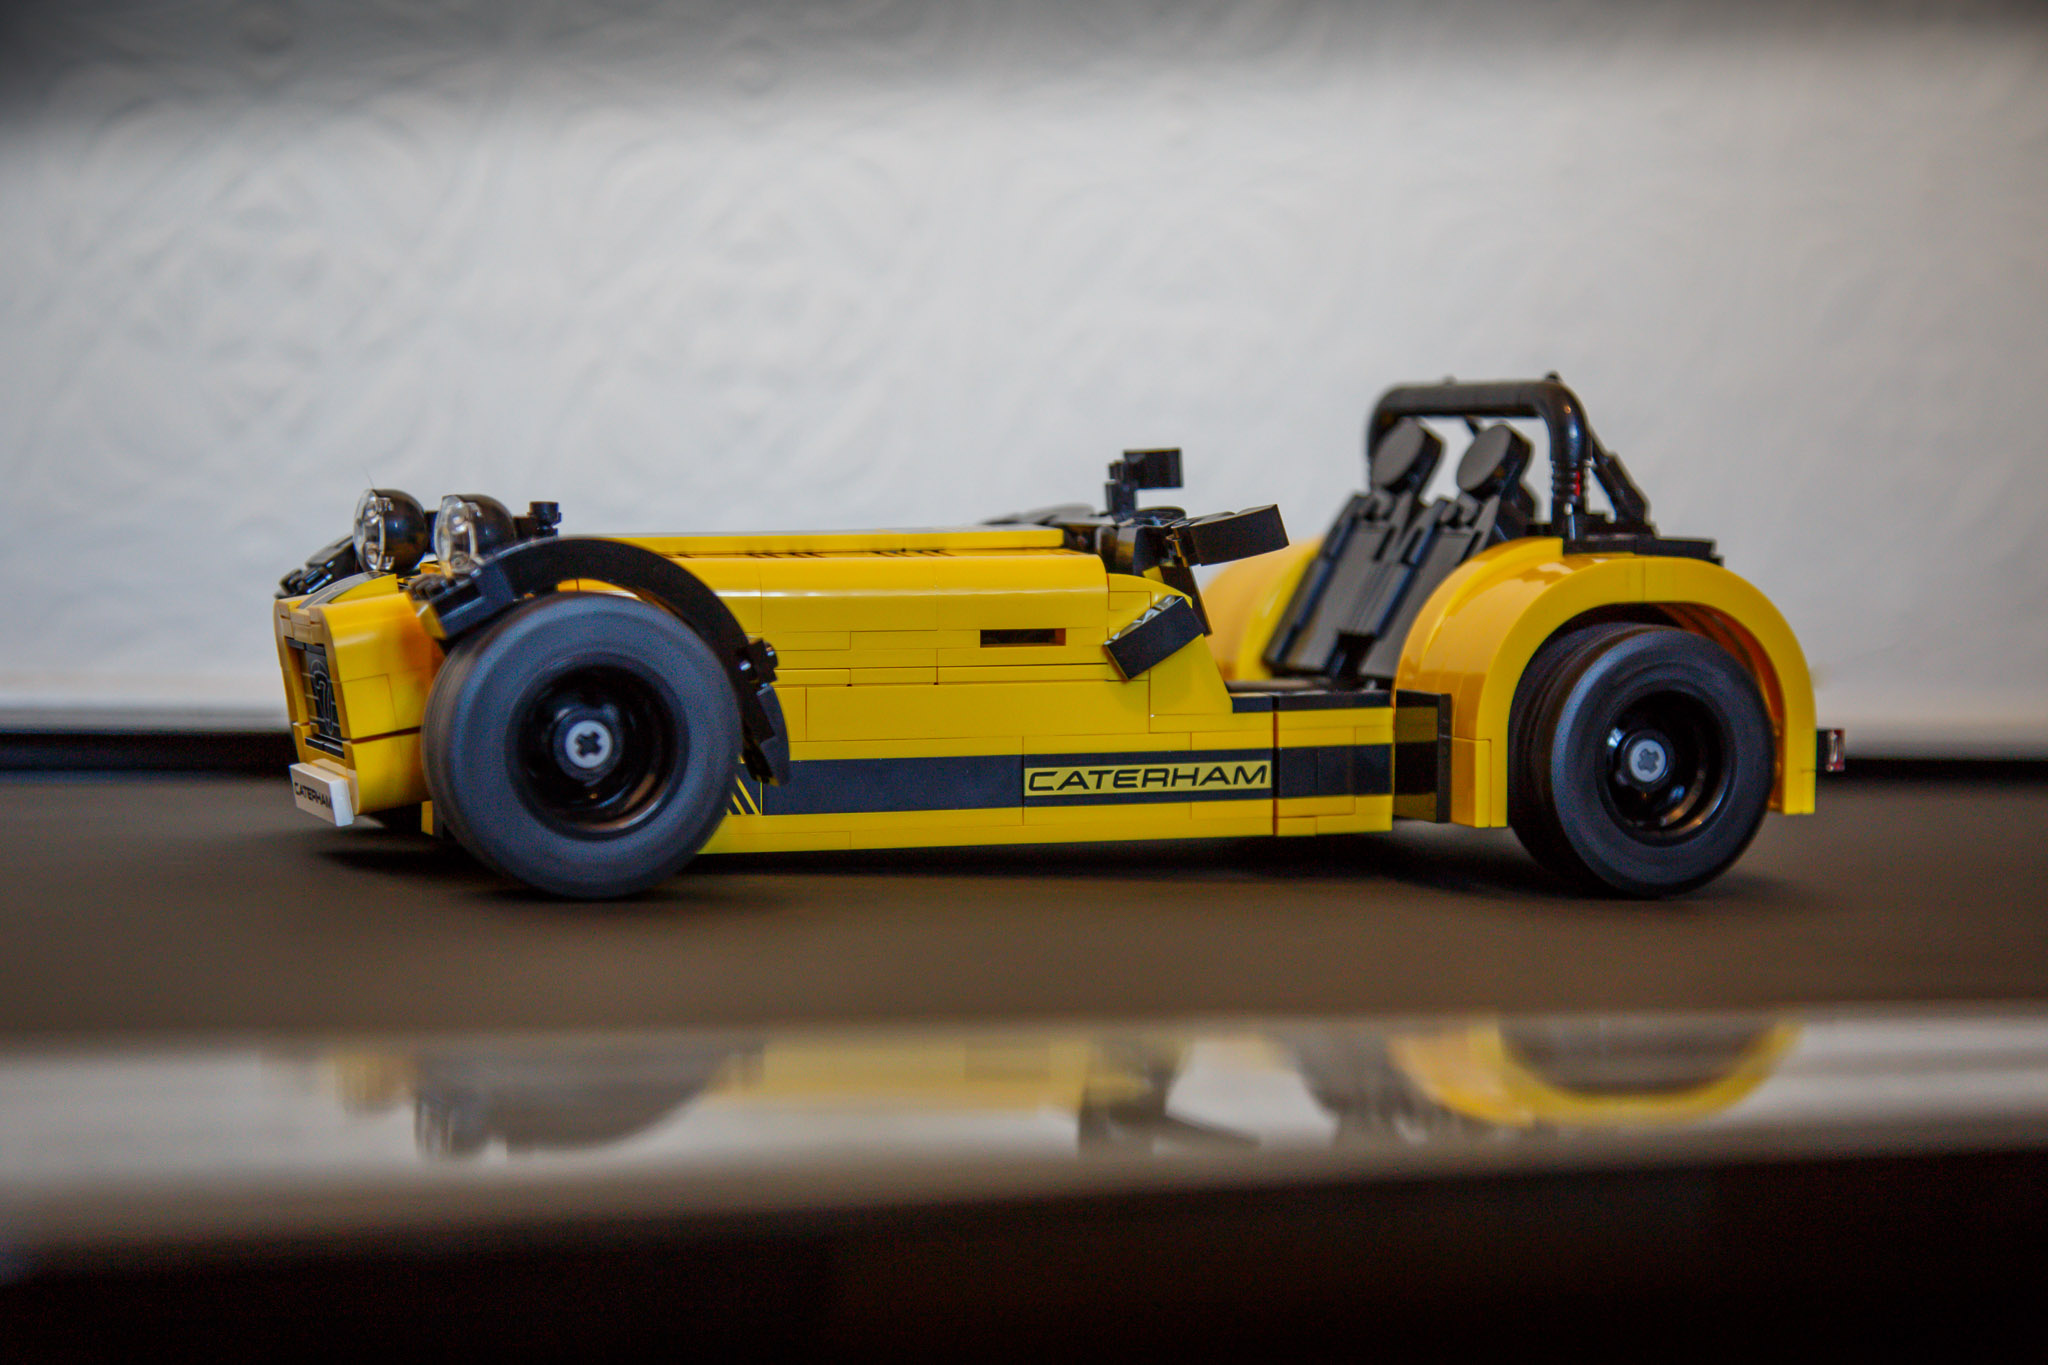 caterham s 620r immortalised as the lego caterham. Black Bedroom Furniture Sets. Home Design Ideas